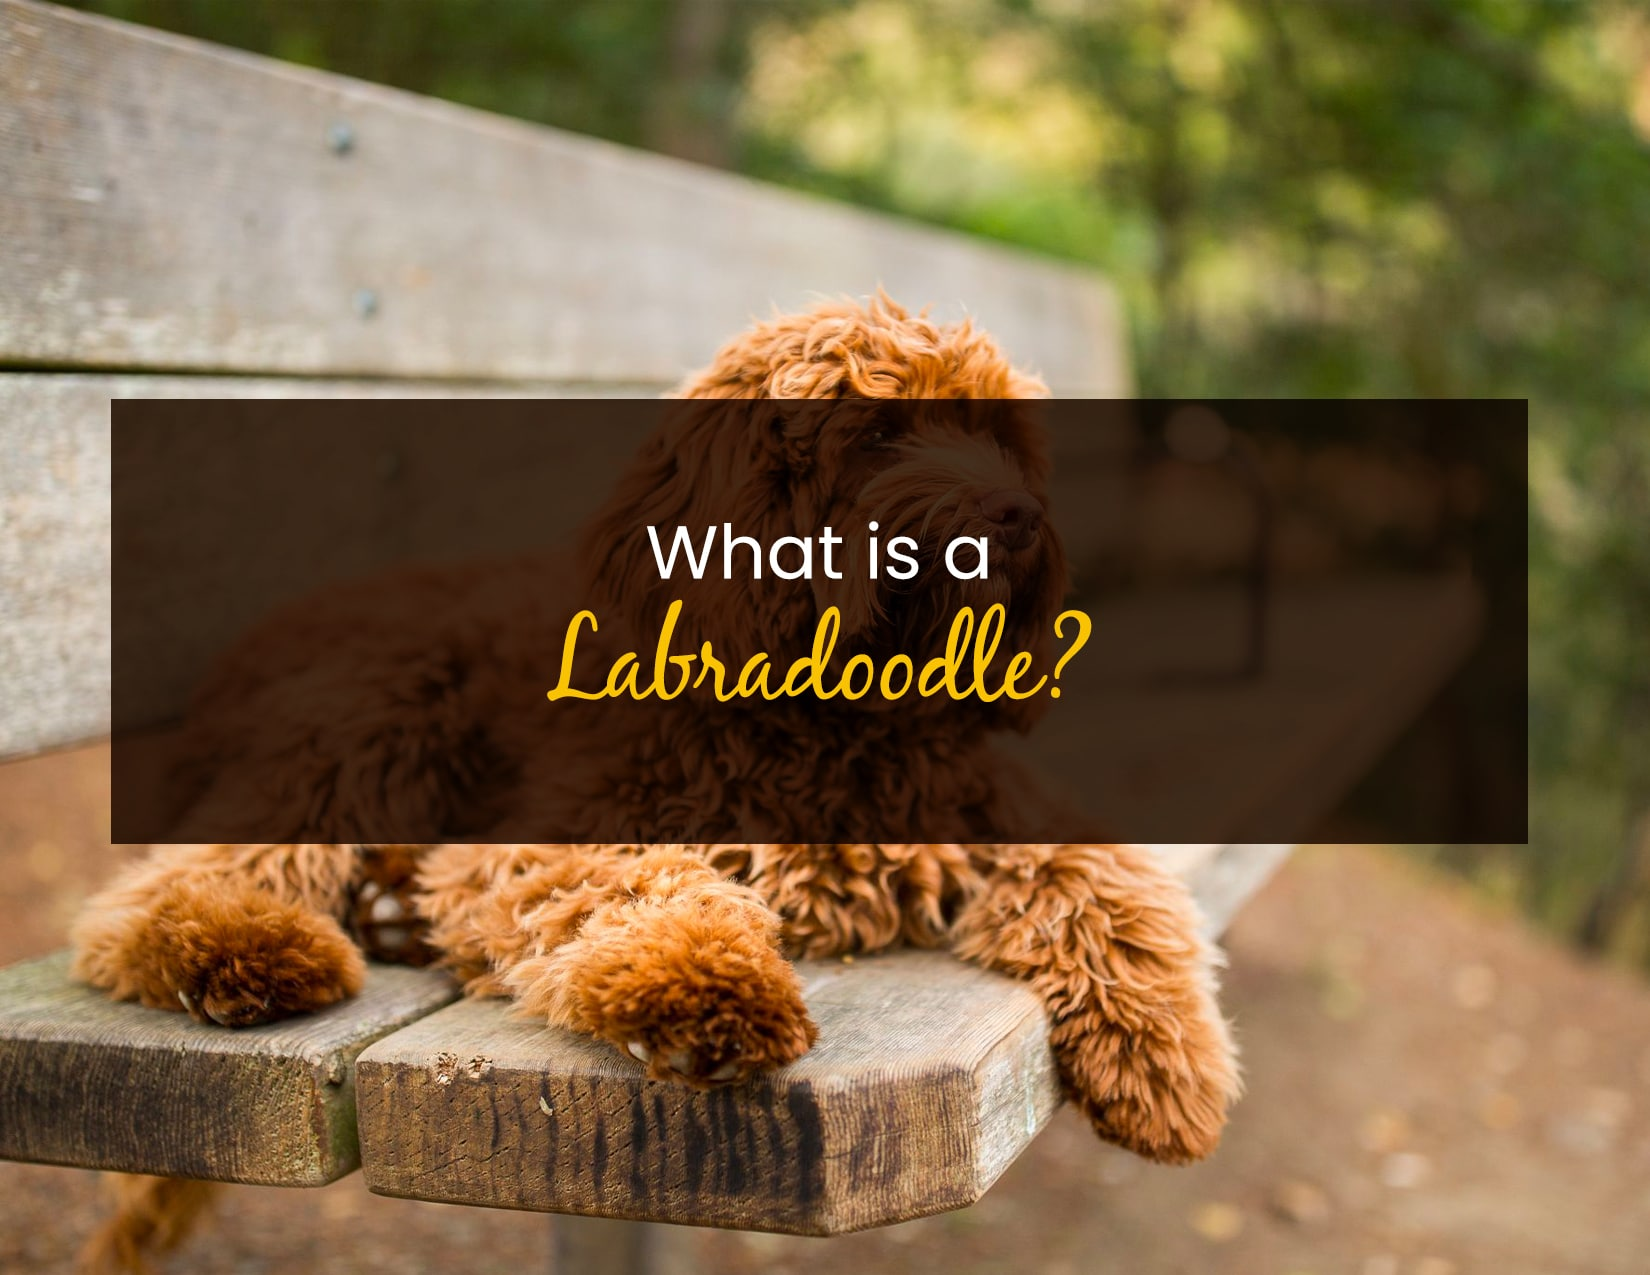 What is a Labradoodle